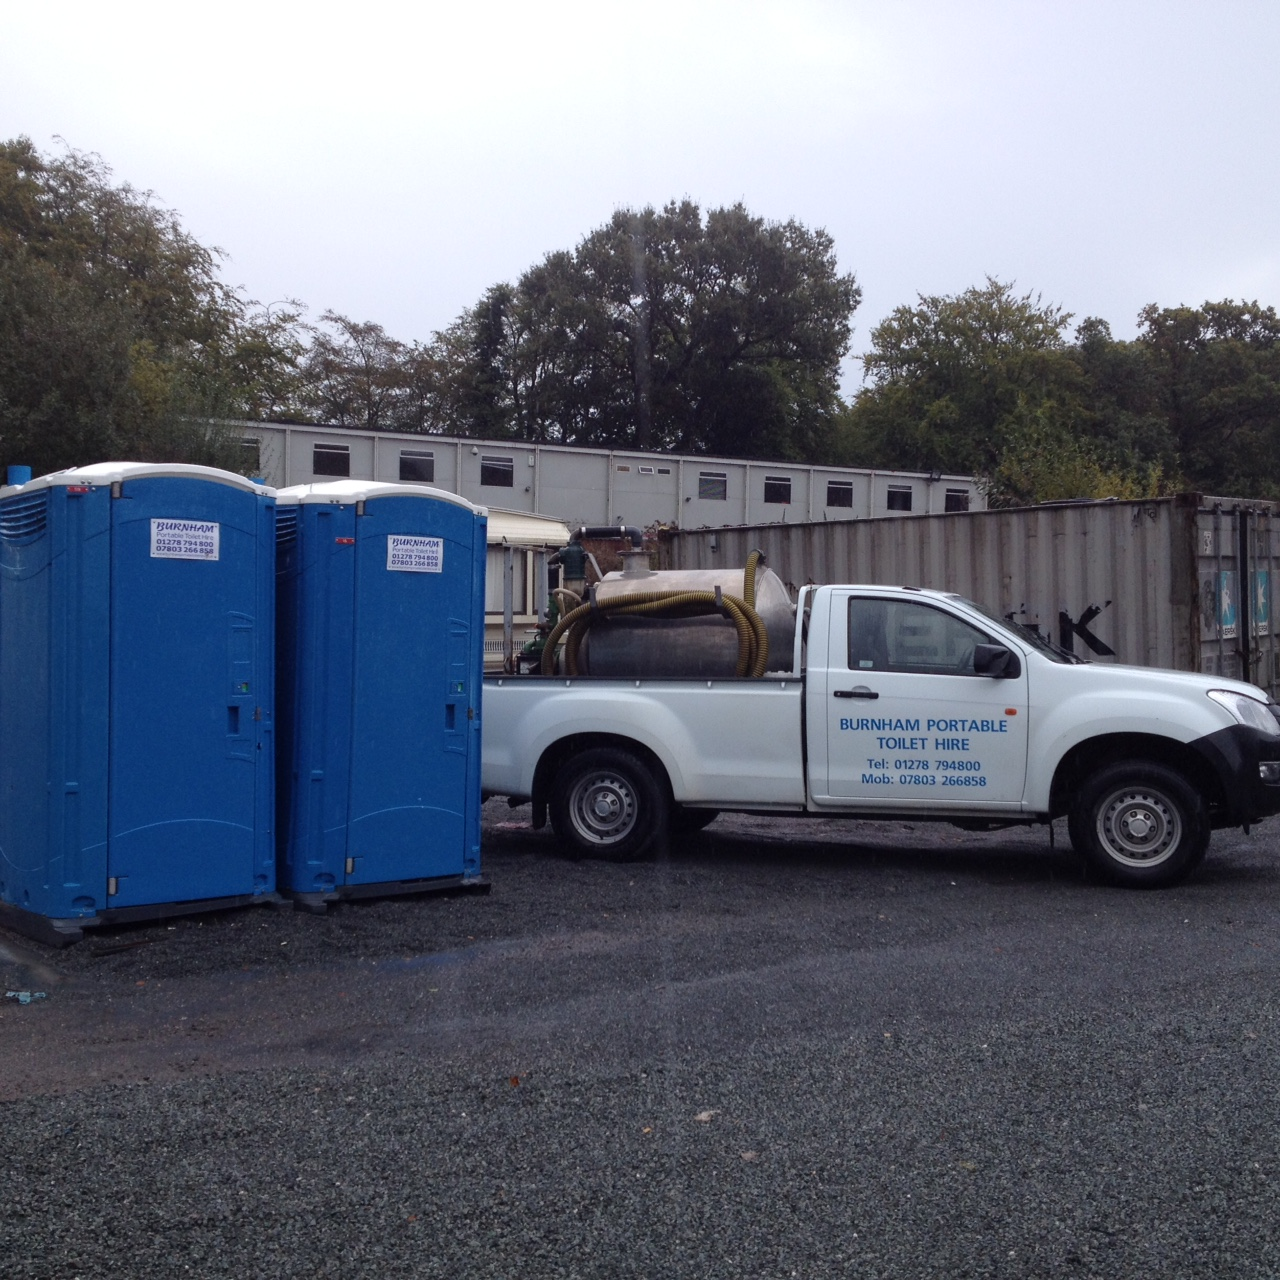 Event Party Portable Toilet Hire Somerset UK Glastonbury Wells Taunton South West - Van